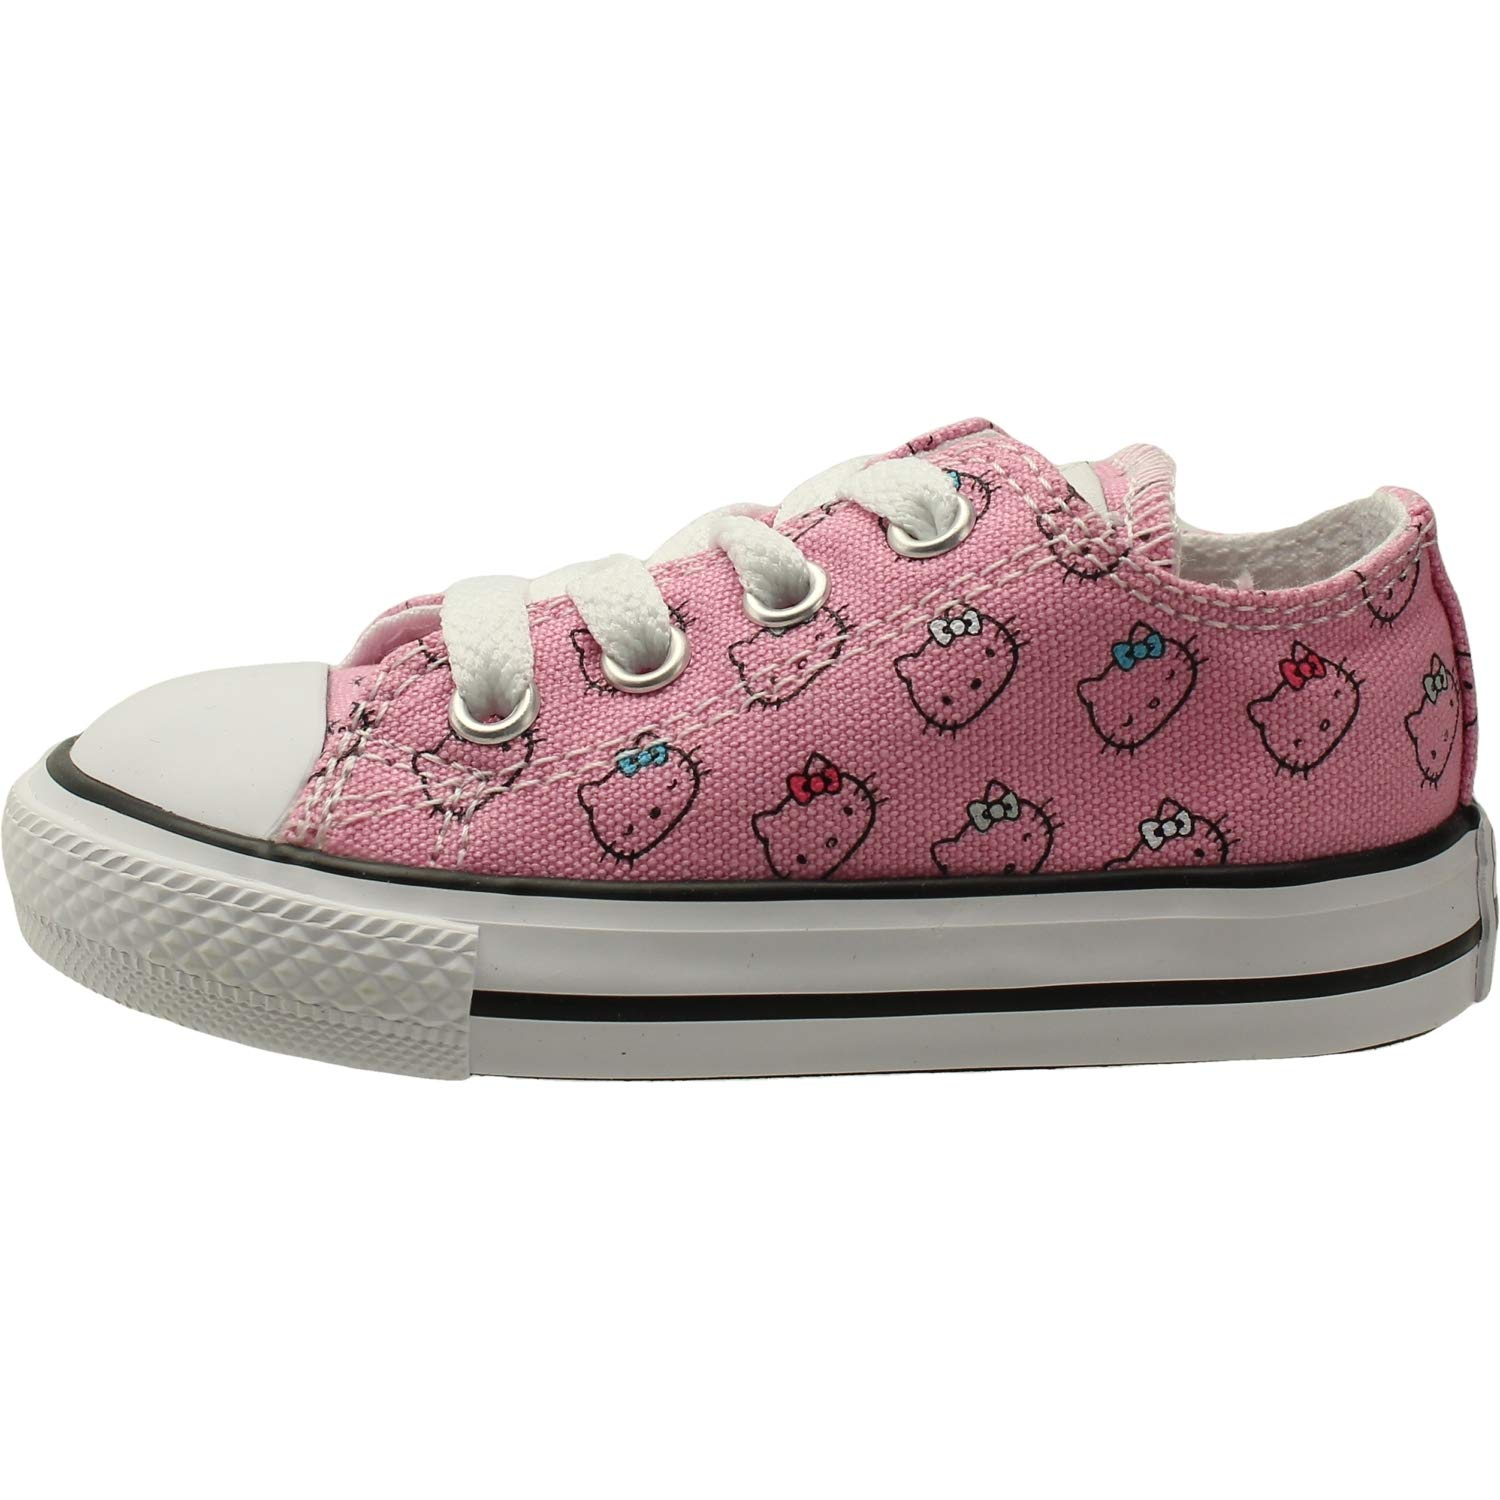 Converse Chuck Taylor All Star Hello Kitty Ox Prism Pink